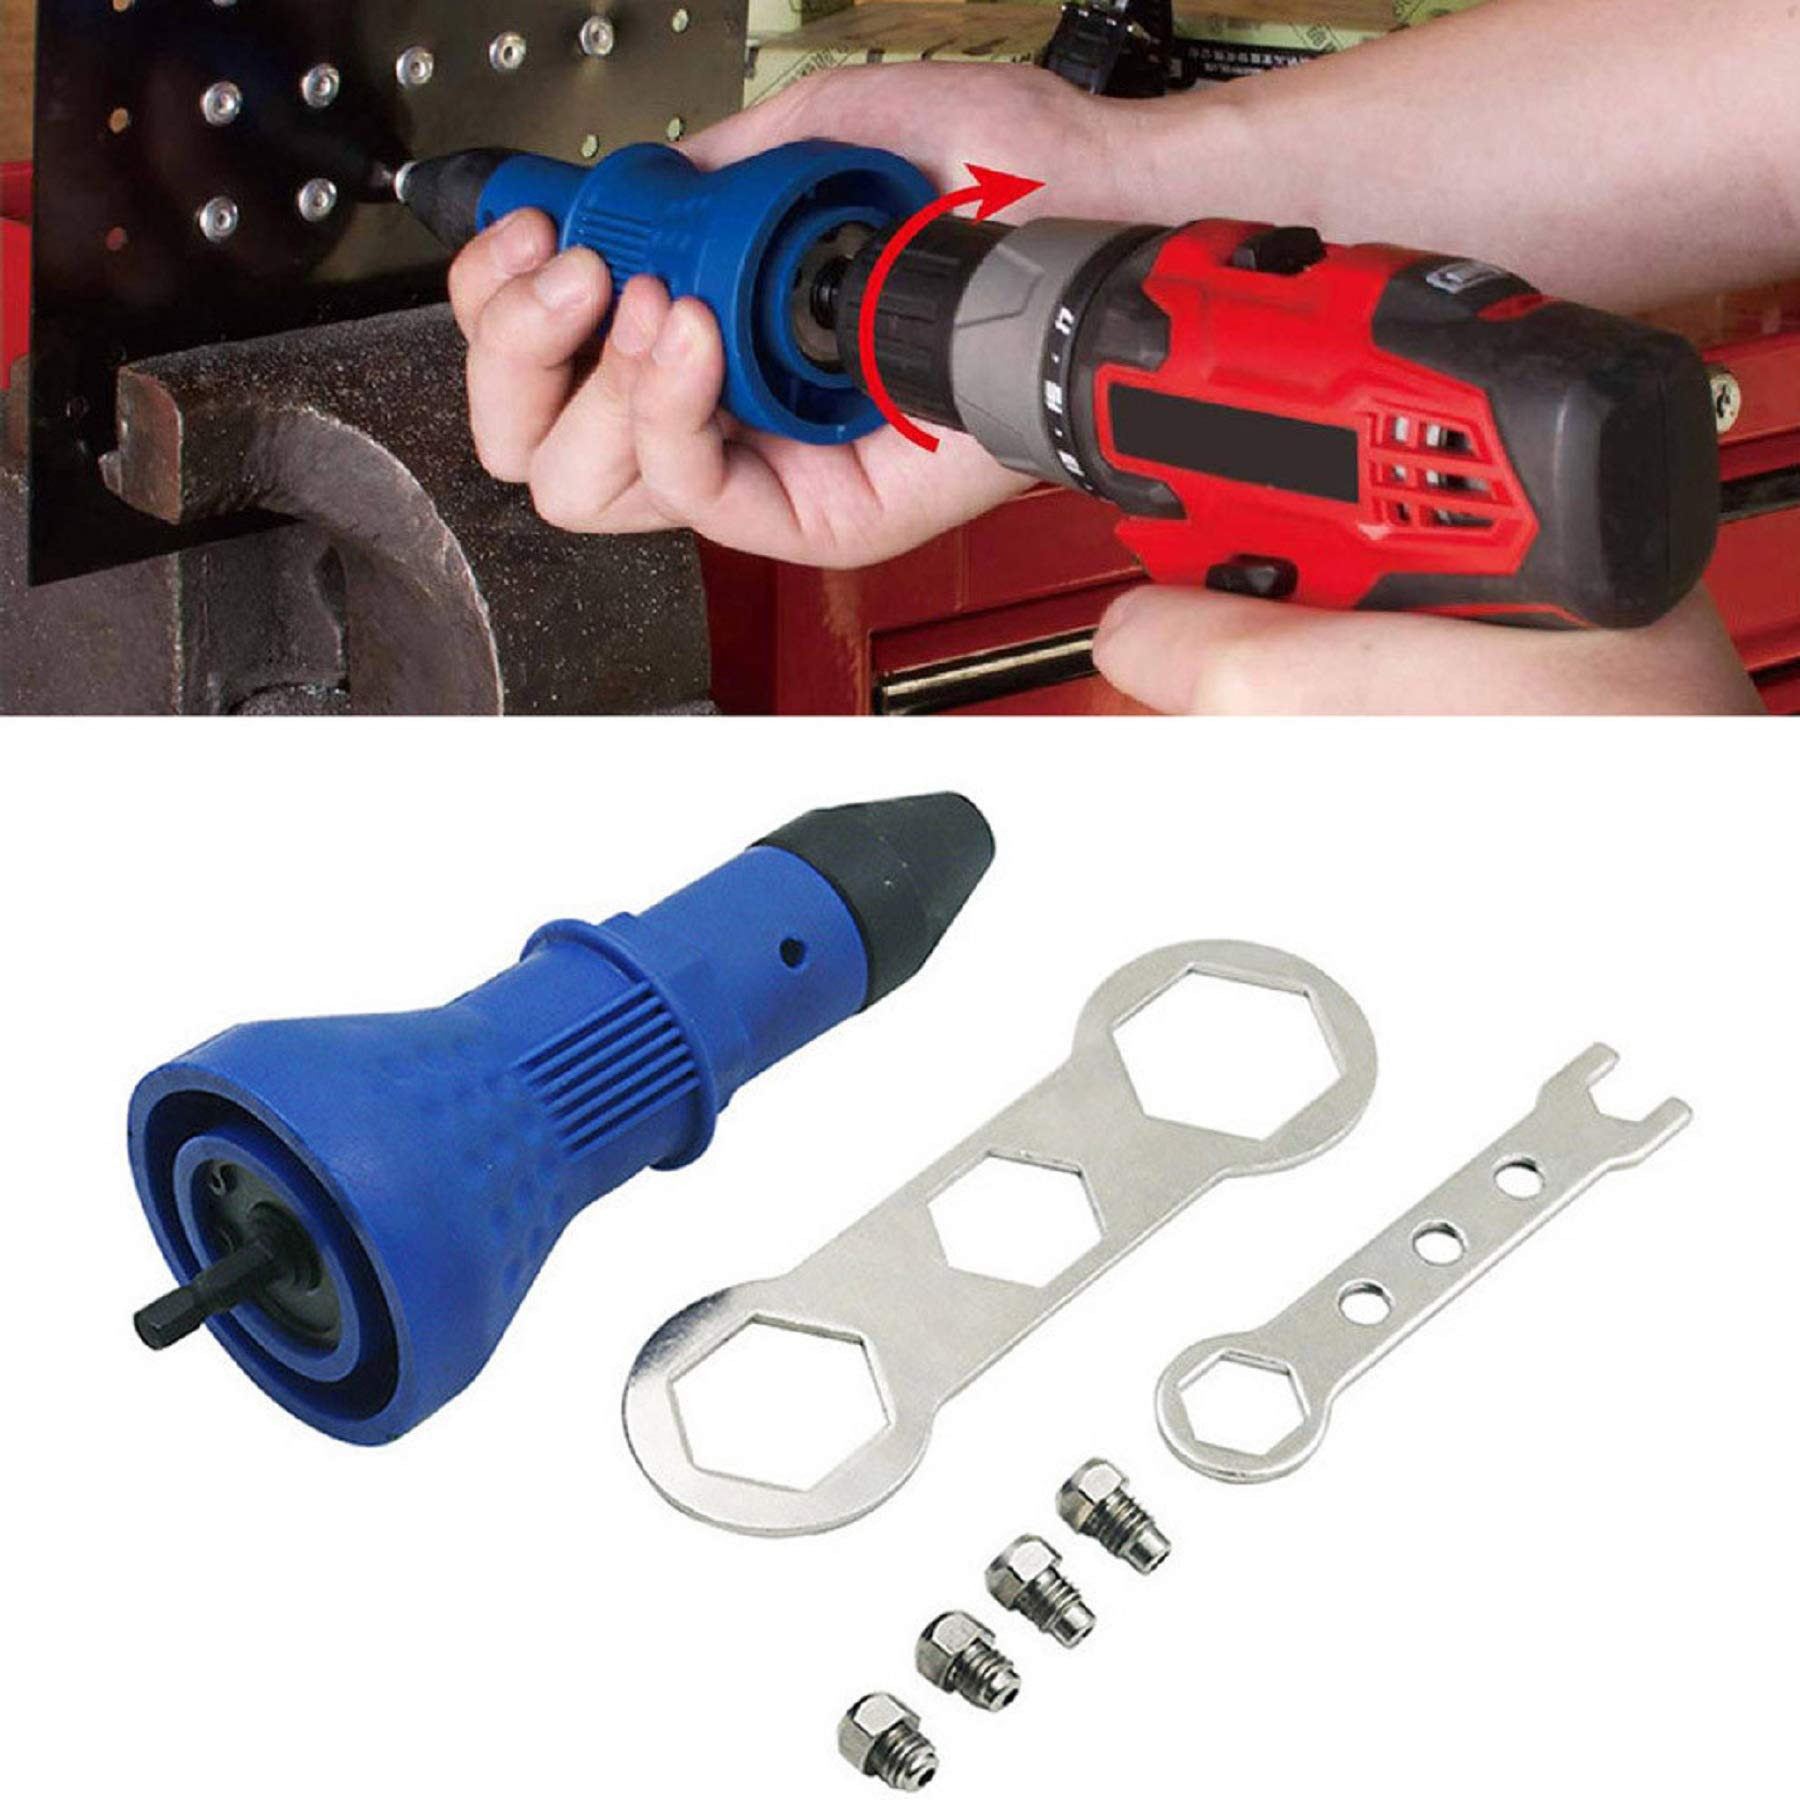 m·kvfa Professional Electric Rivet Nut Detachable Rivet Drill Adapter Insert Nut Tool Efficient Easy to Carry by *m·kvfa* Tools